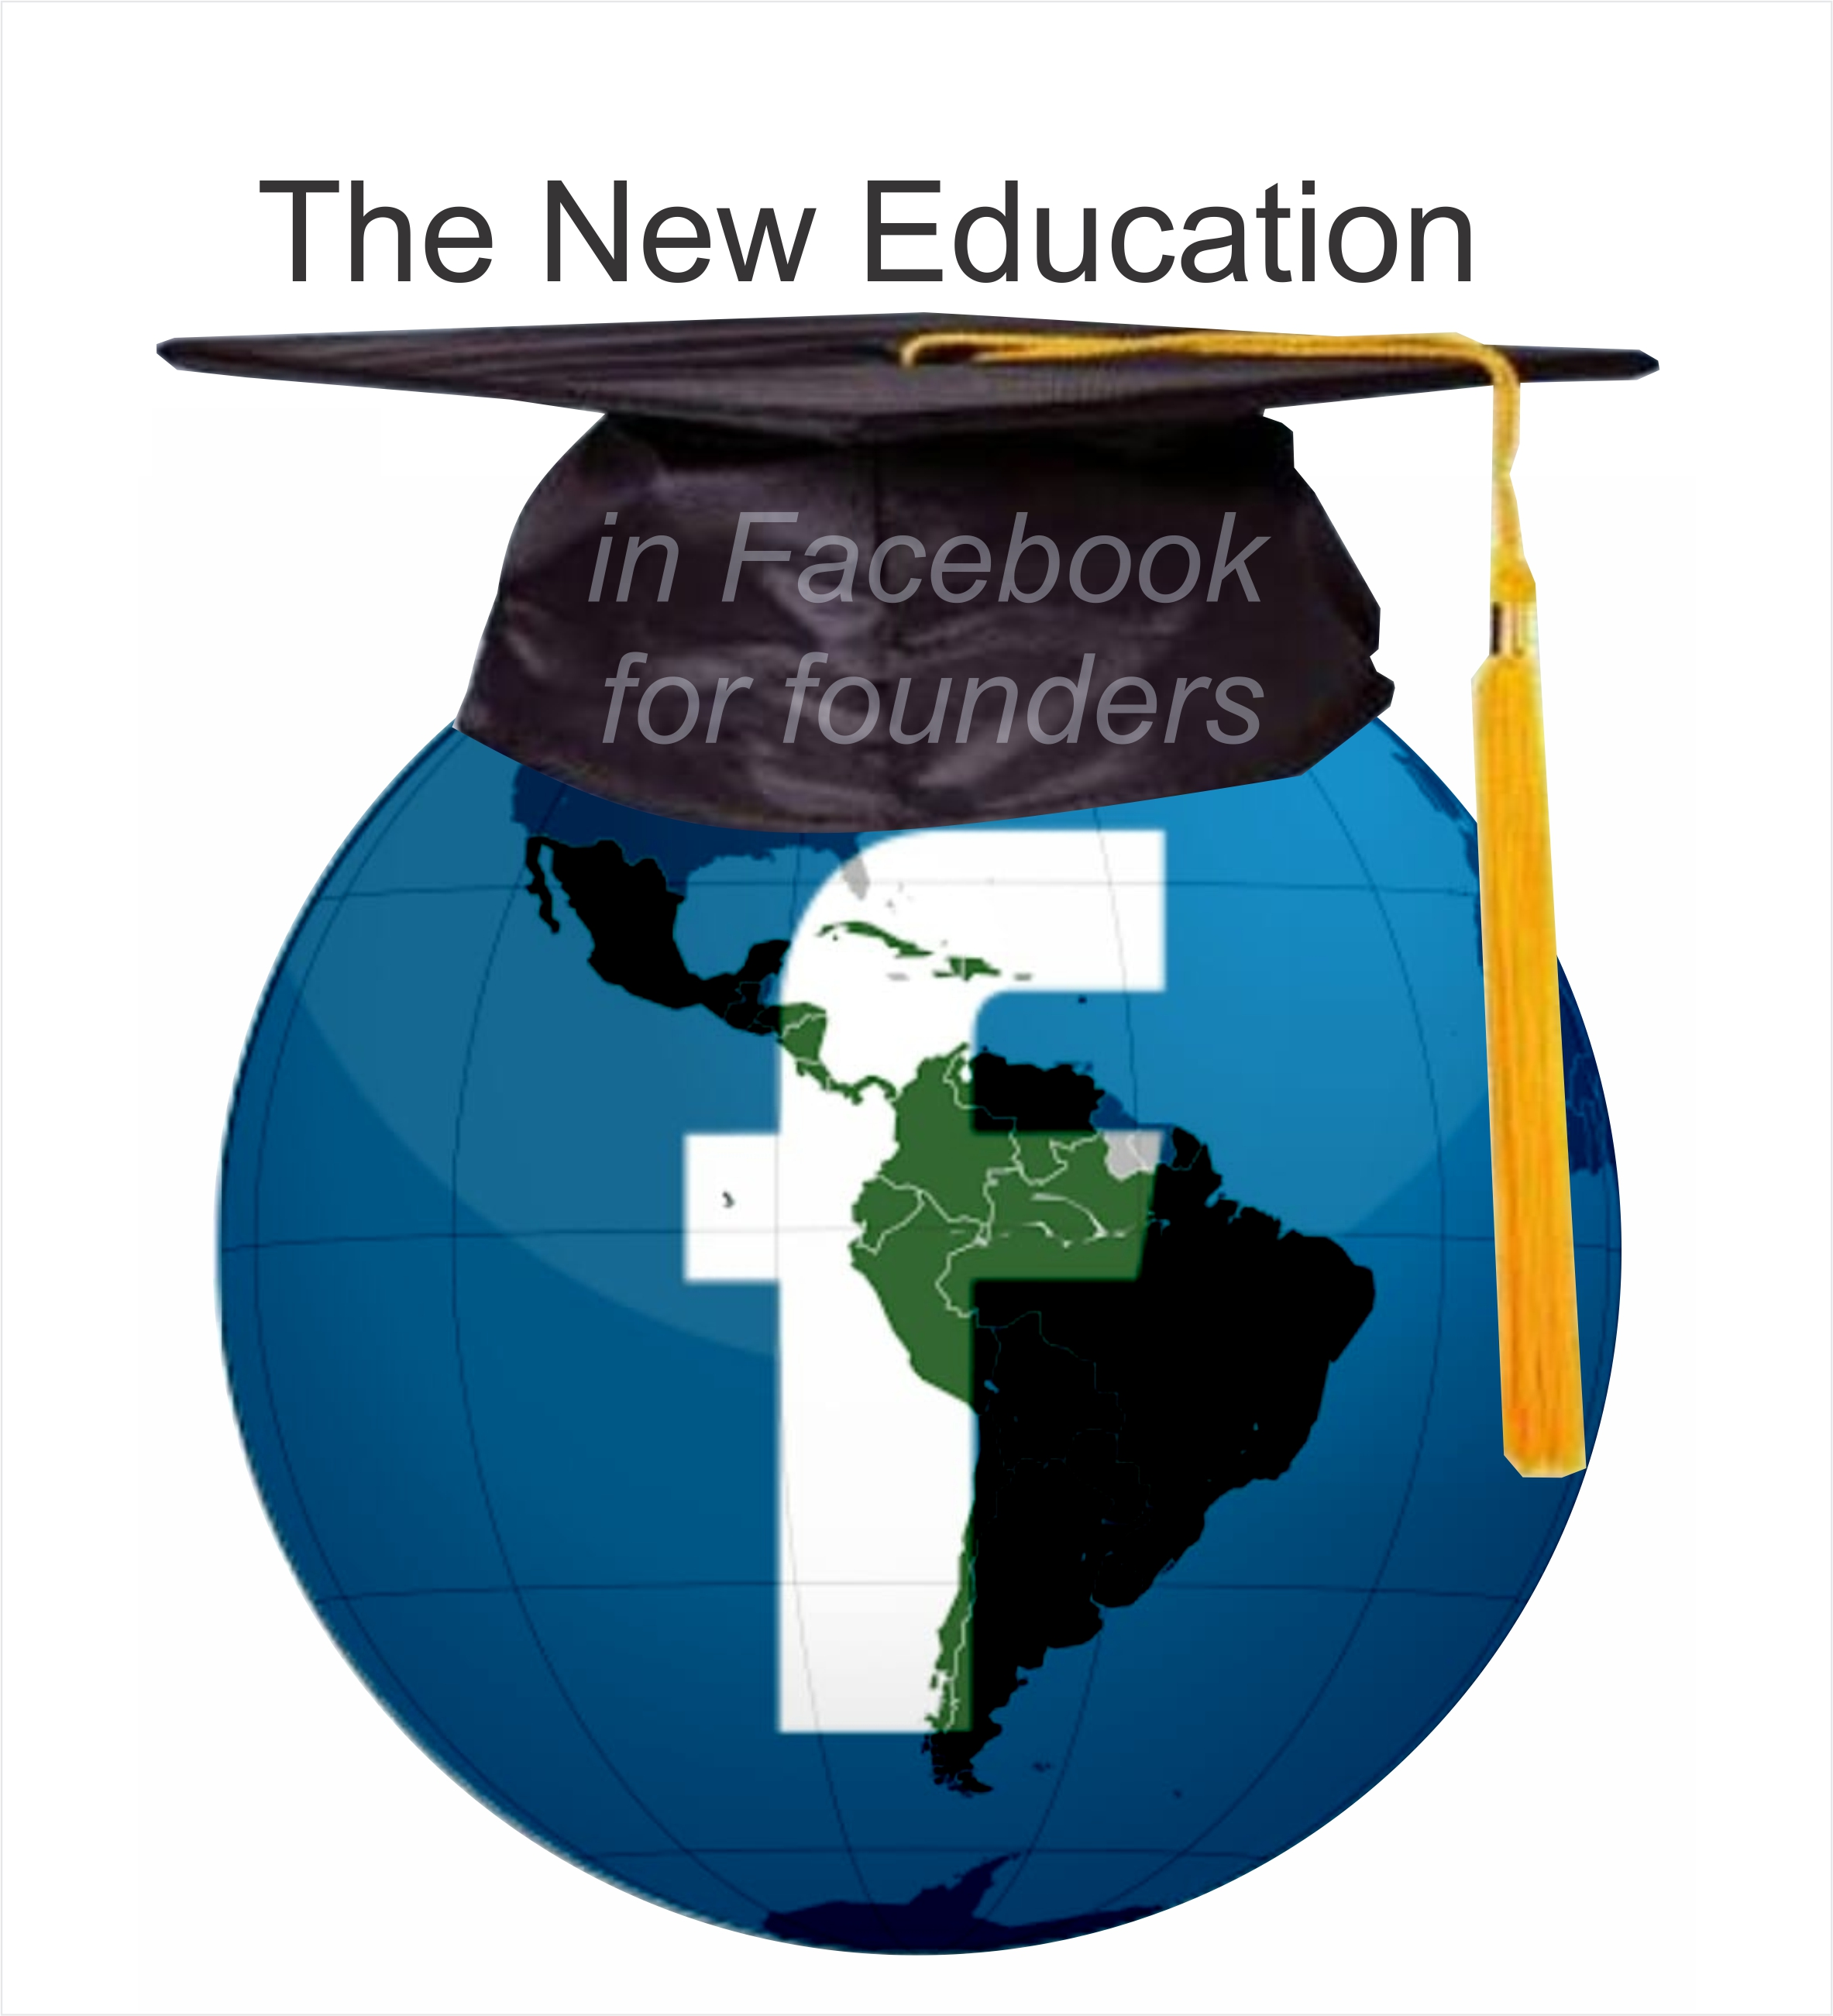 The New Education in Facebook LATAM